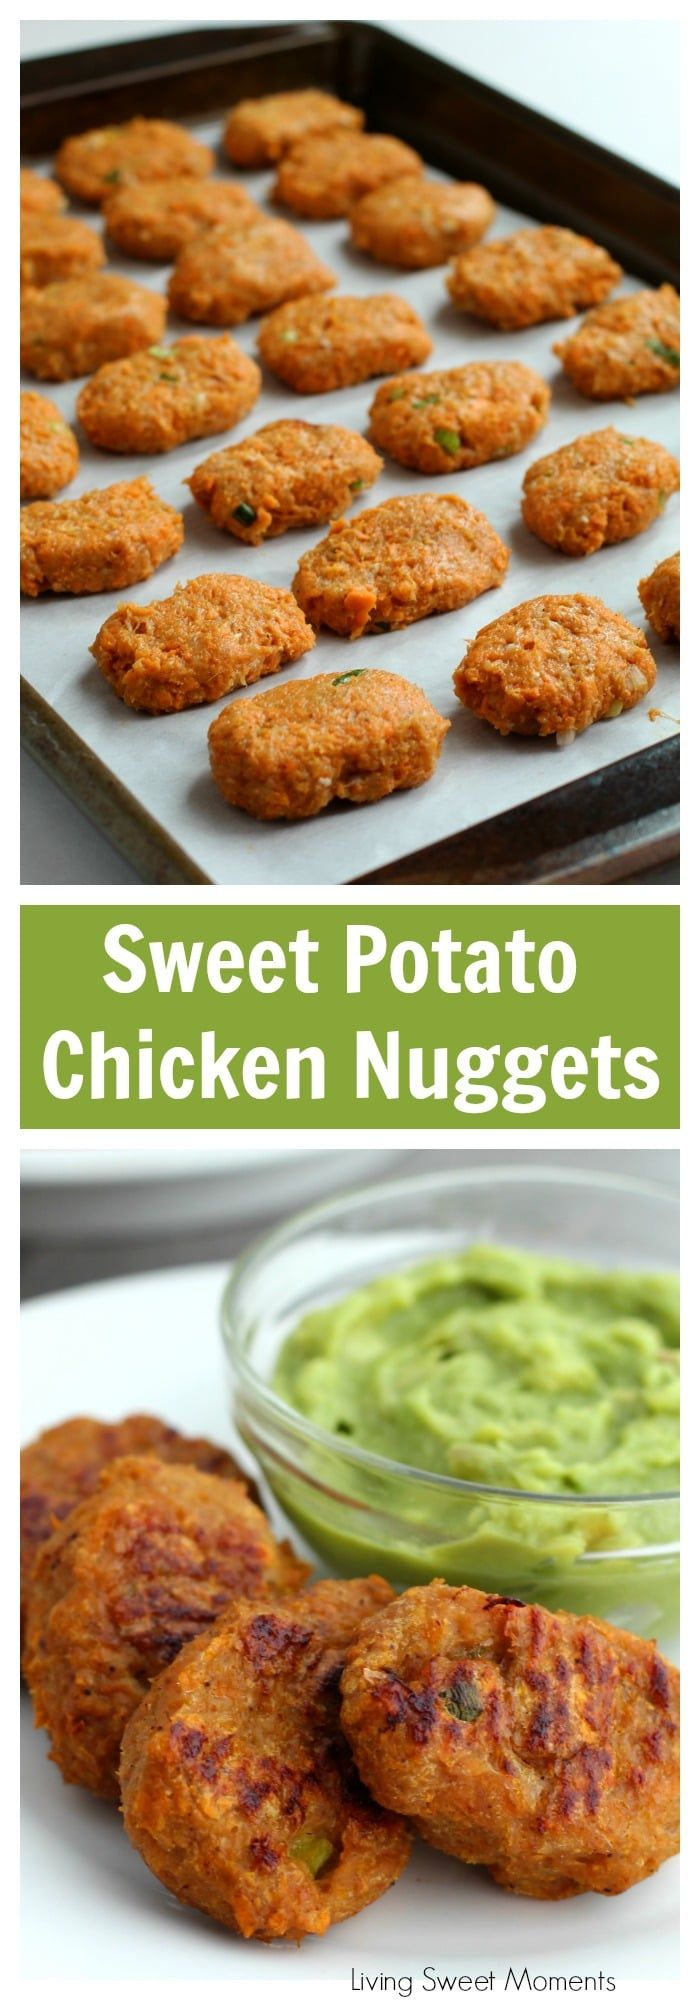 Sweet Potato Chicken Nuggets images